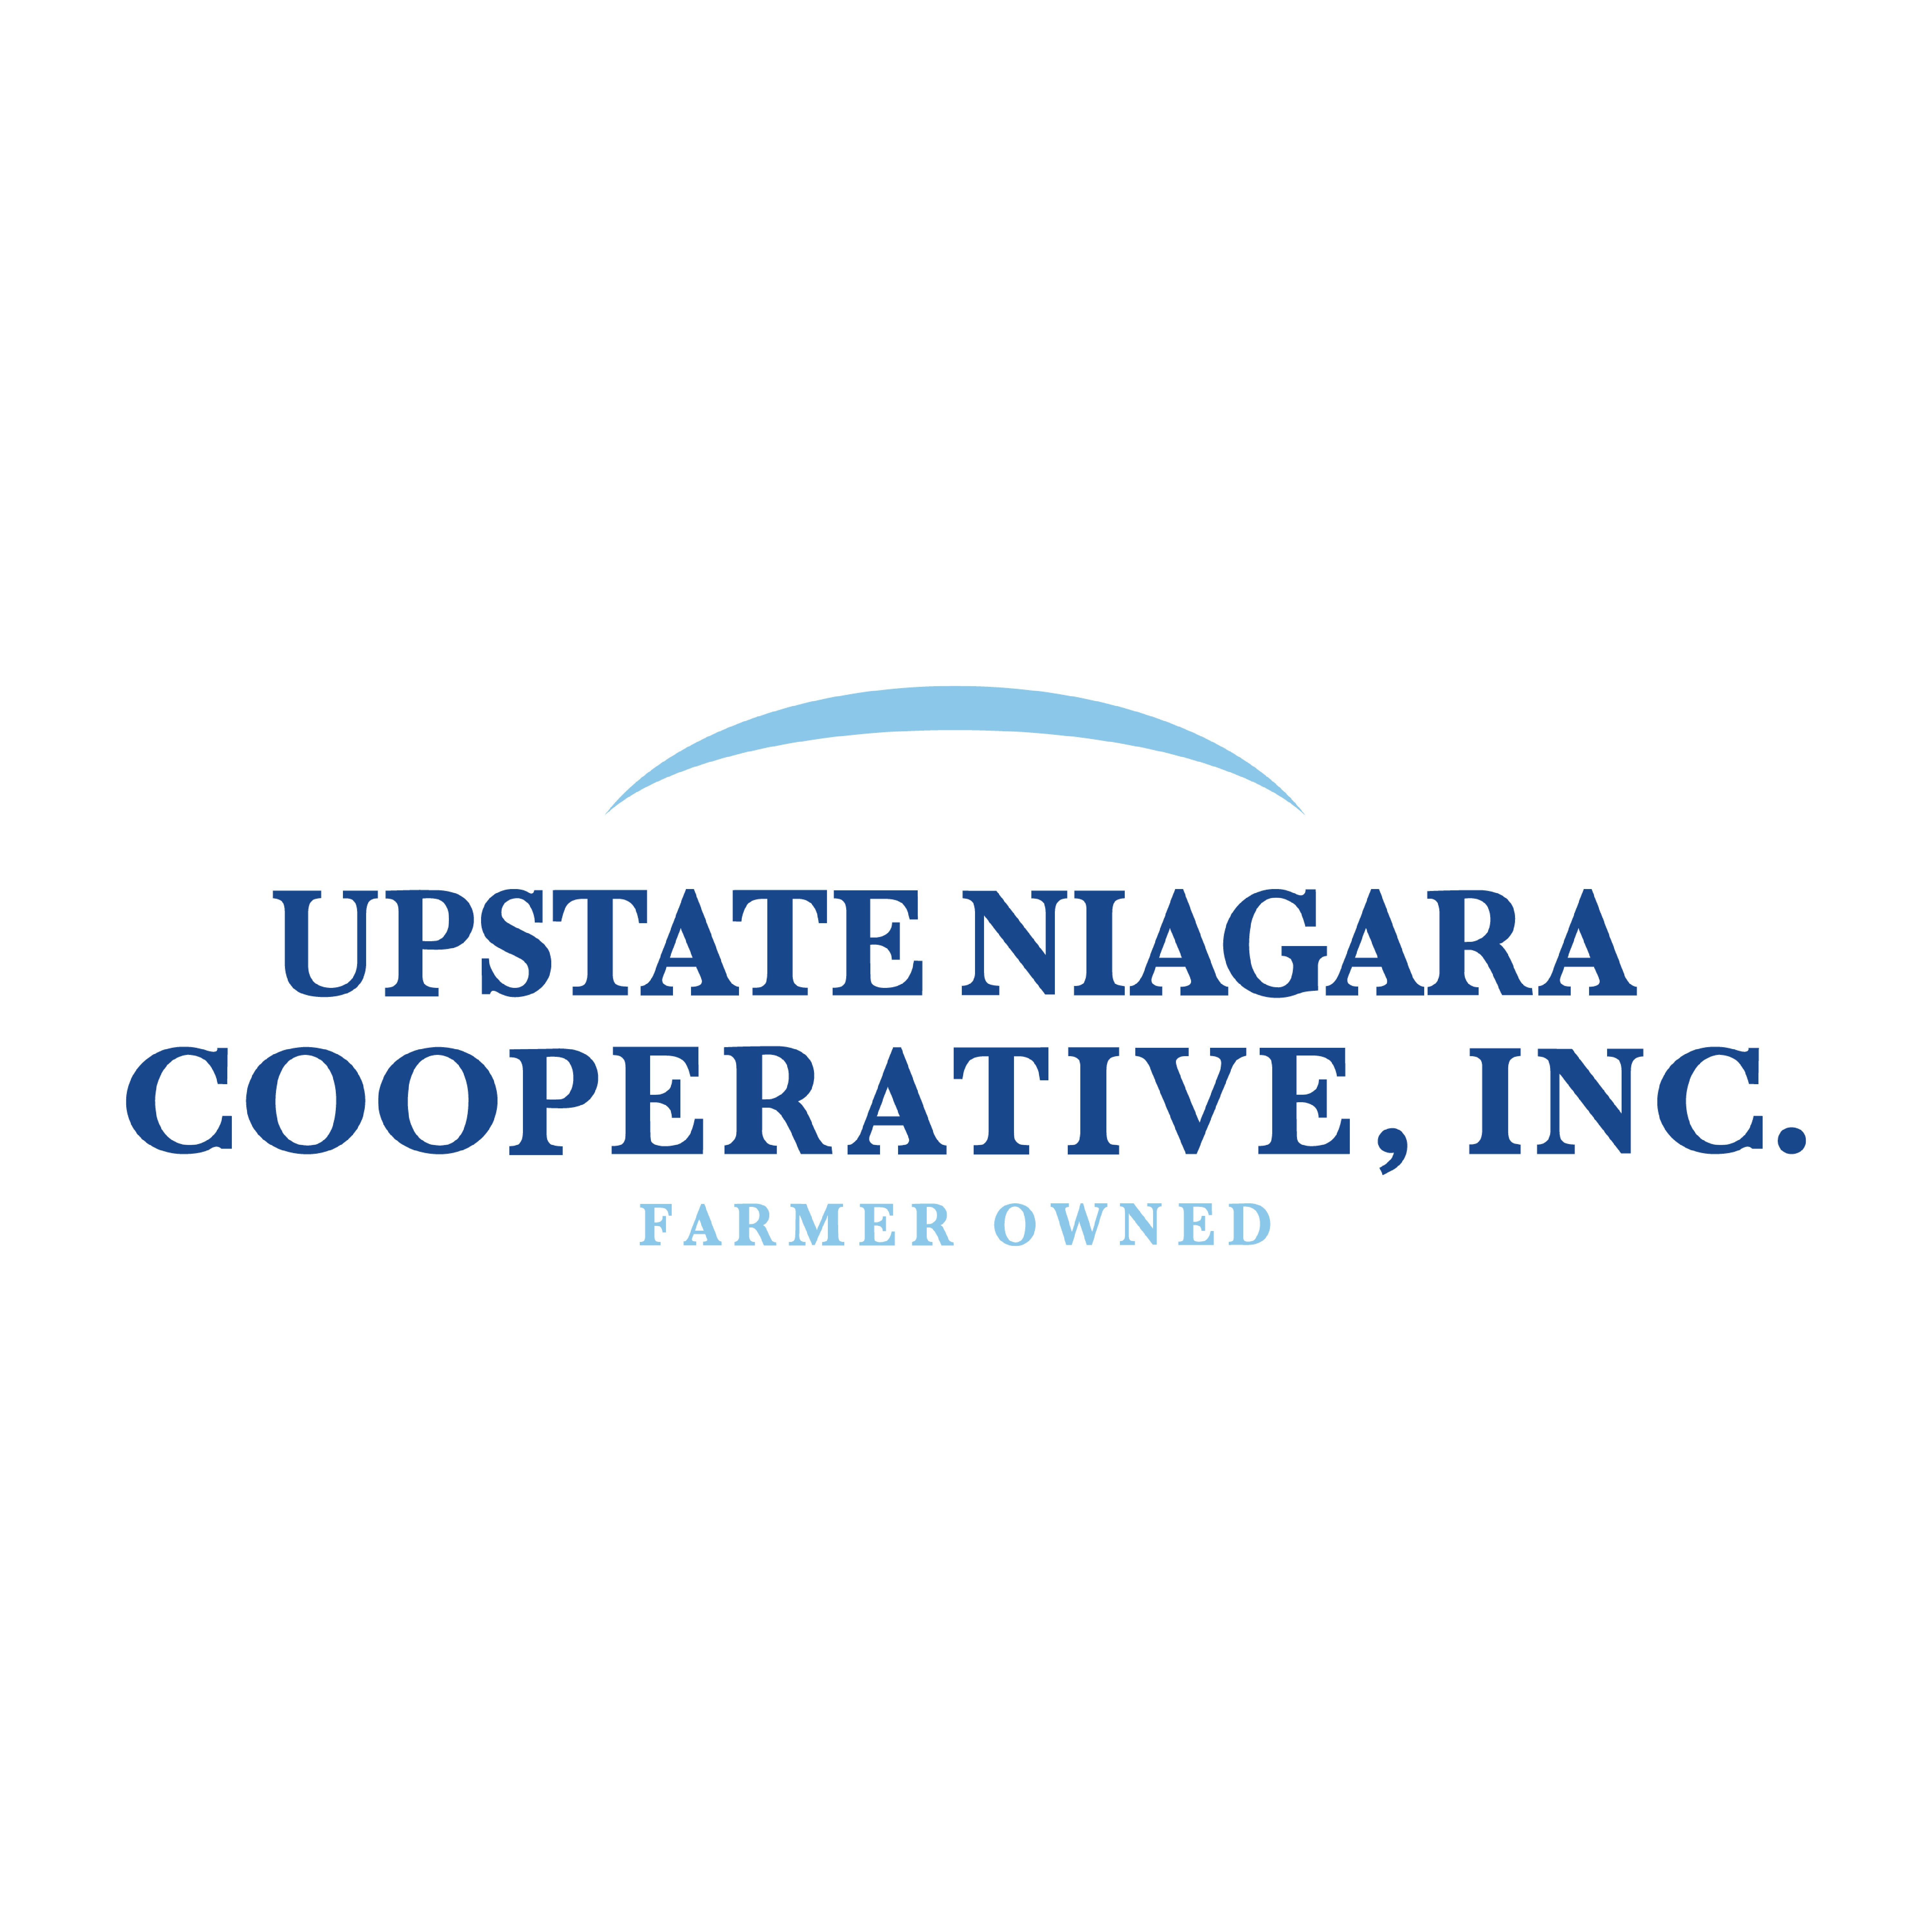 Upstate Niagara Cooperative Inc.